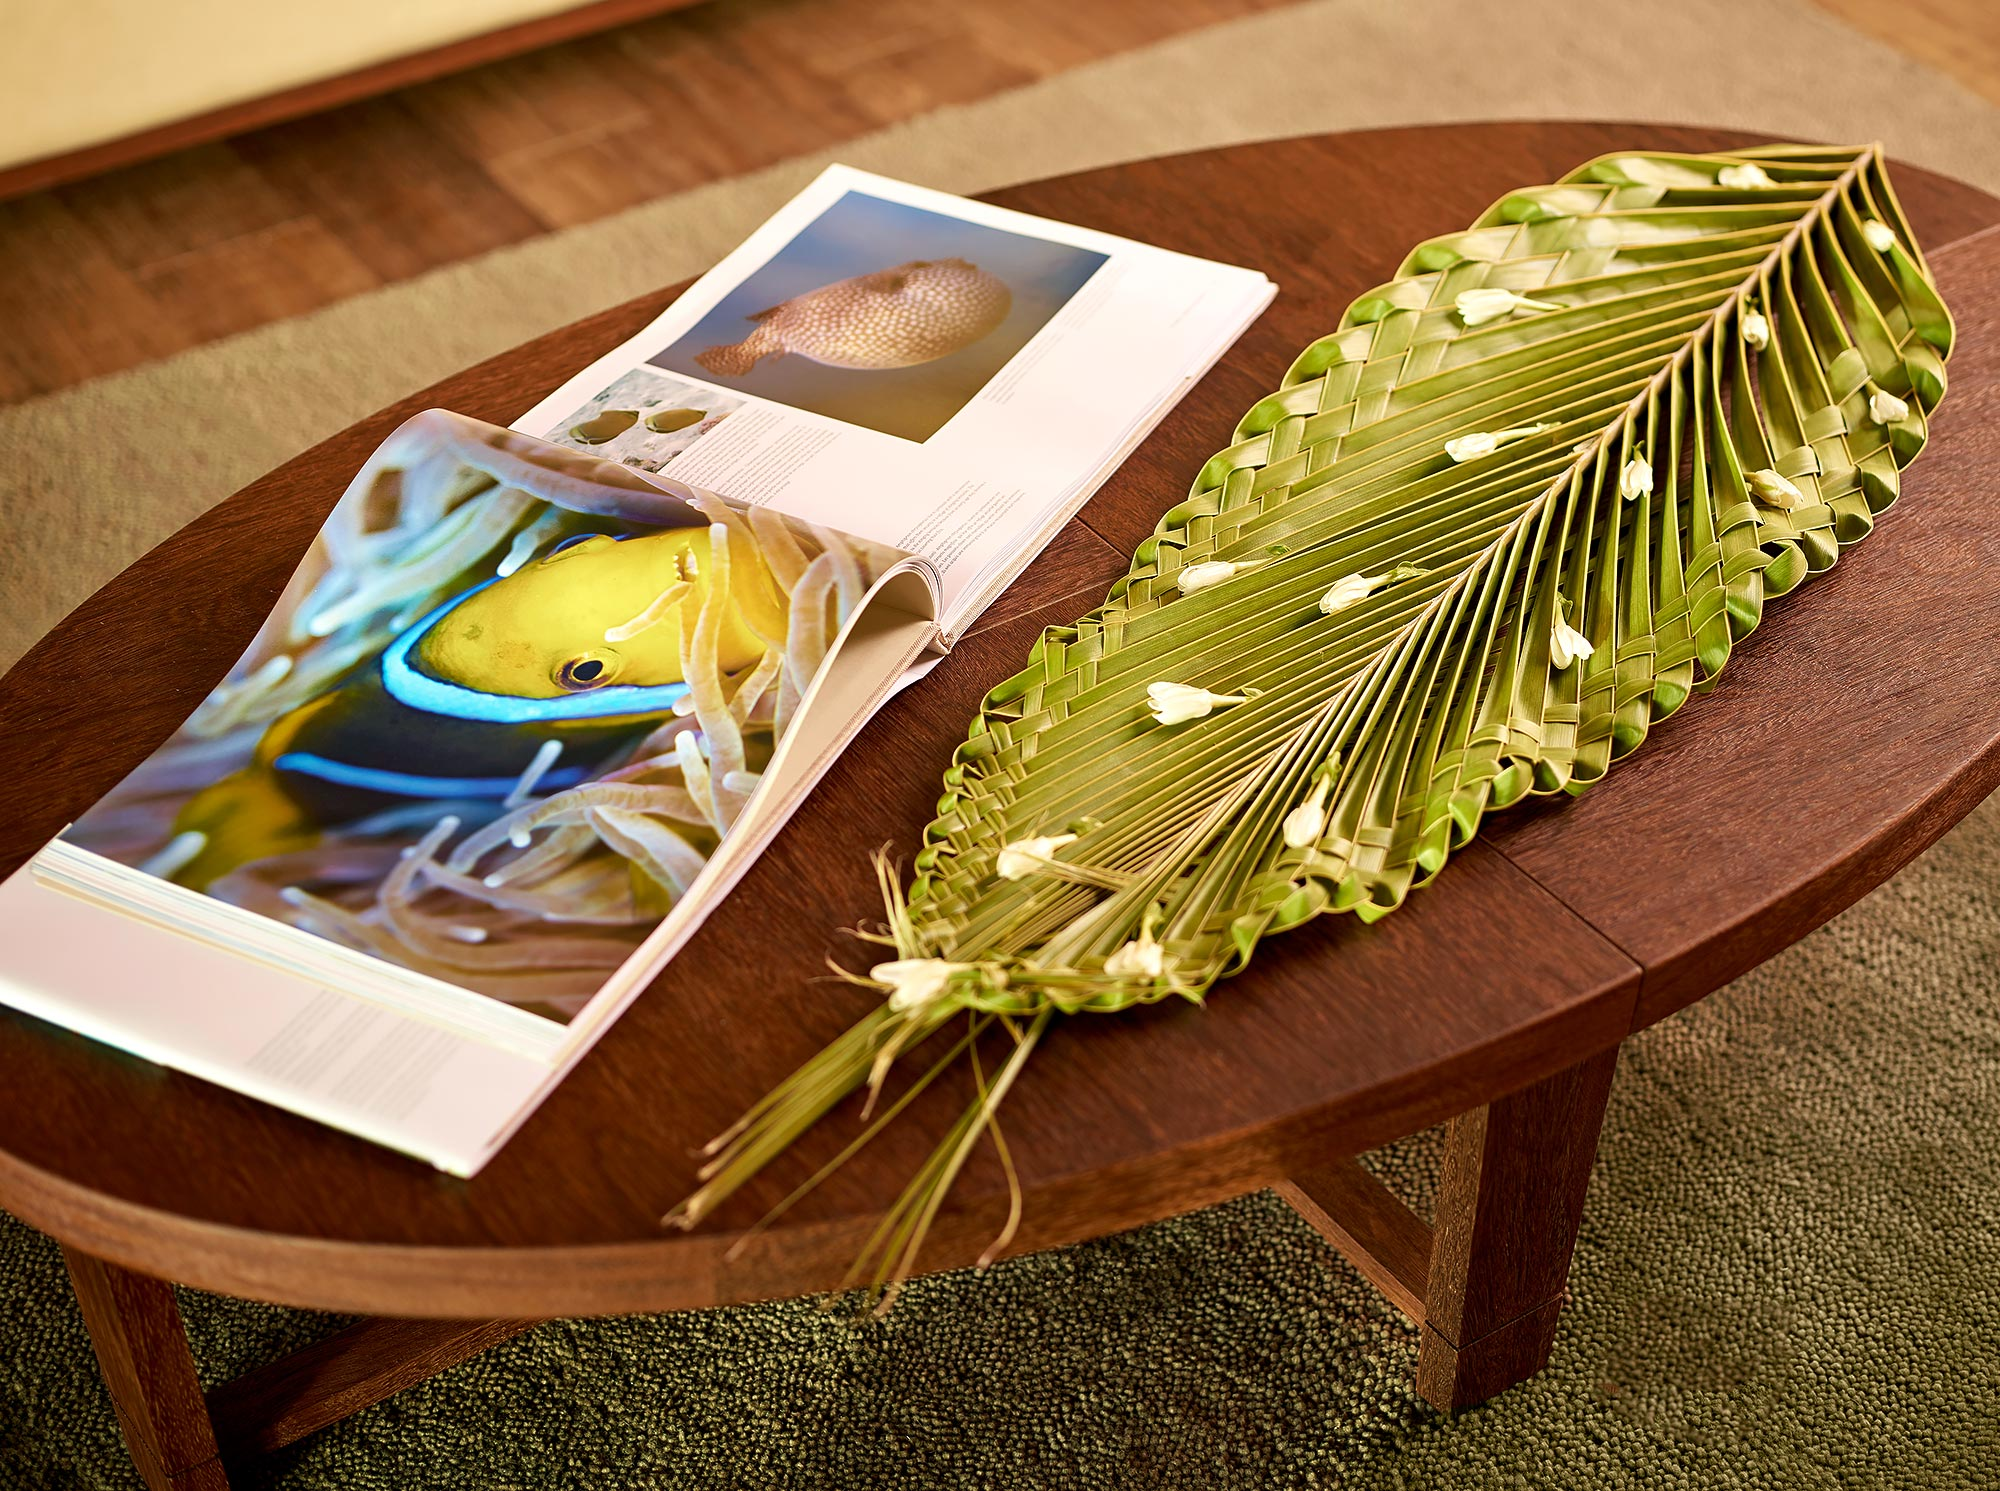 The-Brando-Resort-Table-Palm-Frond